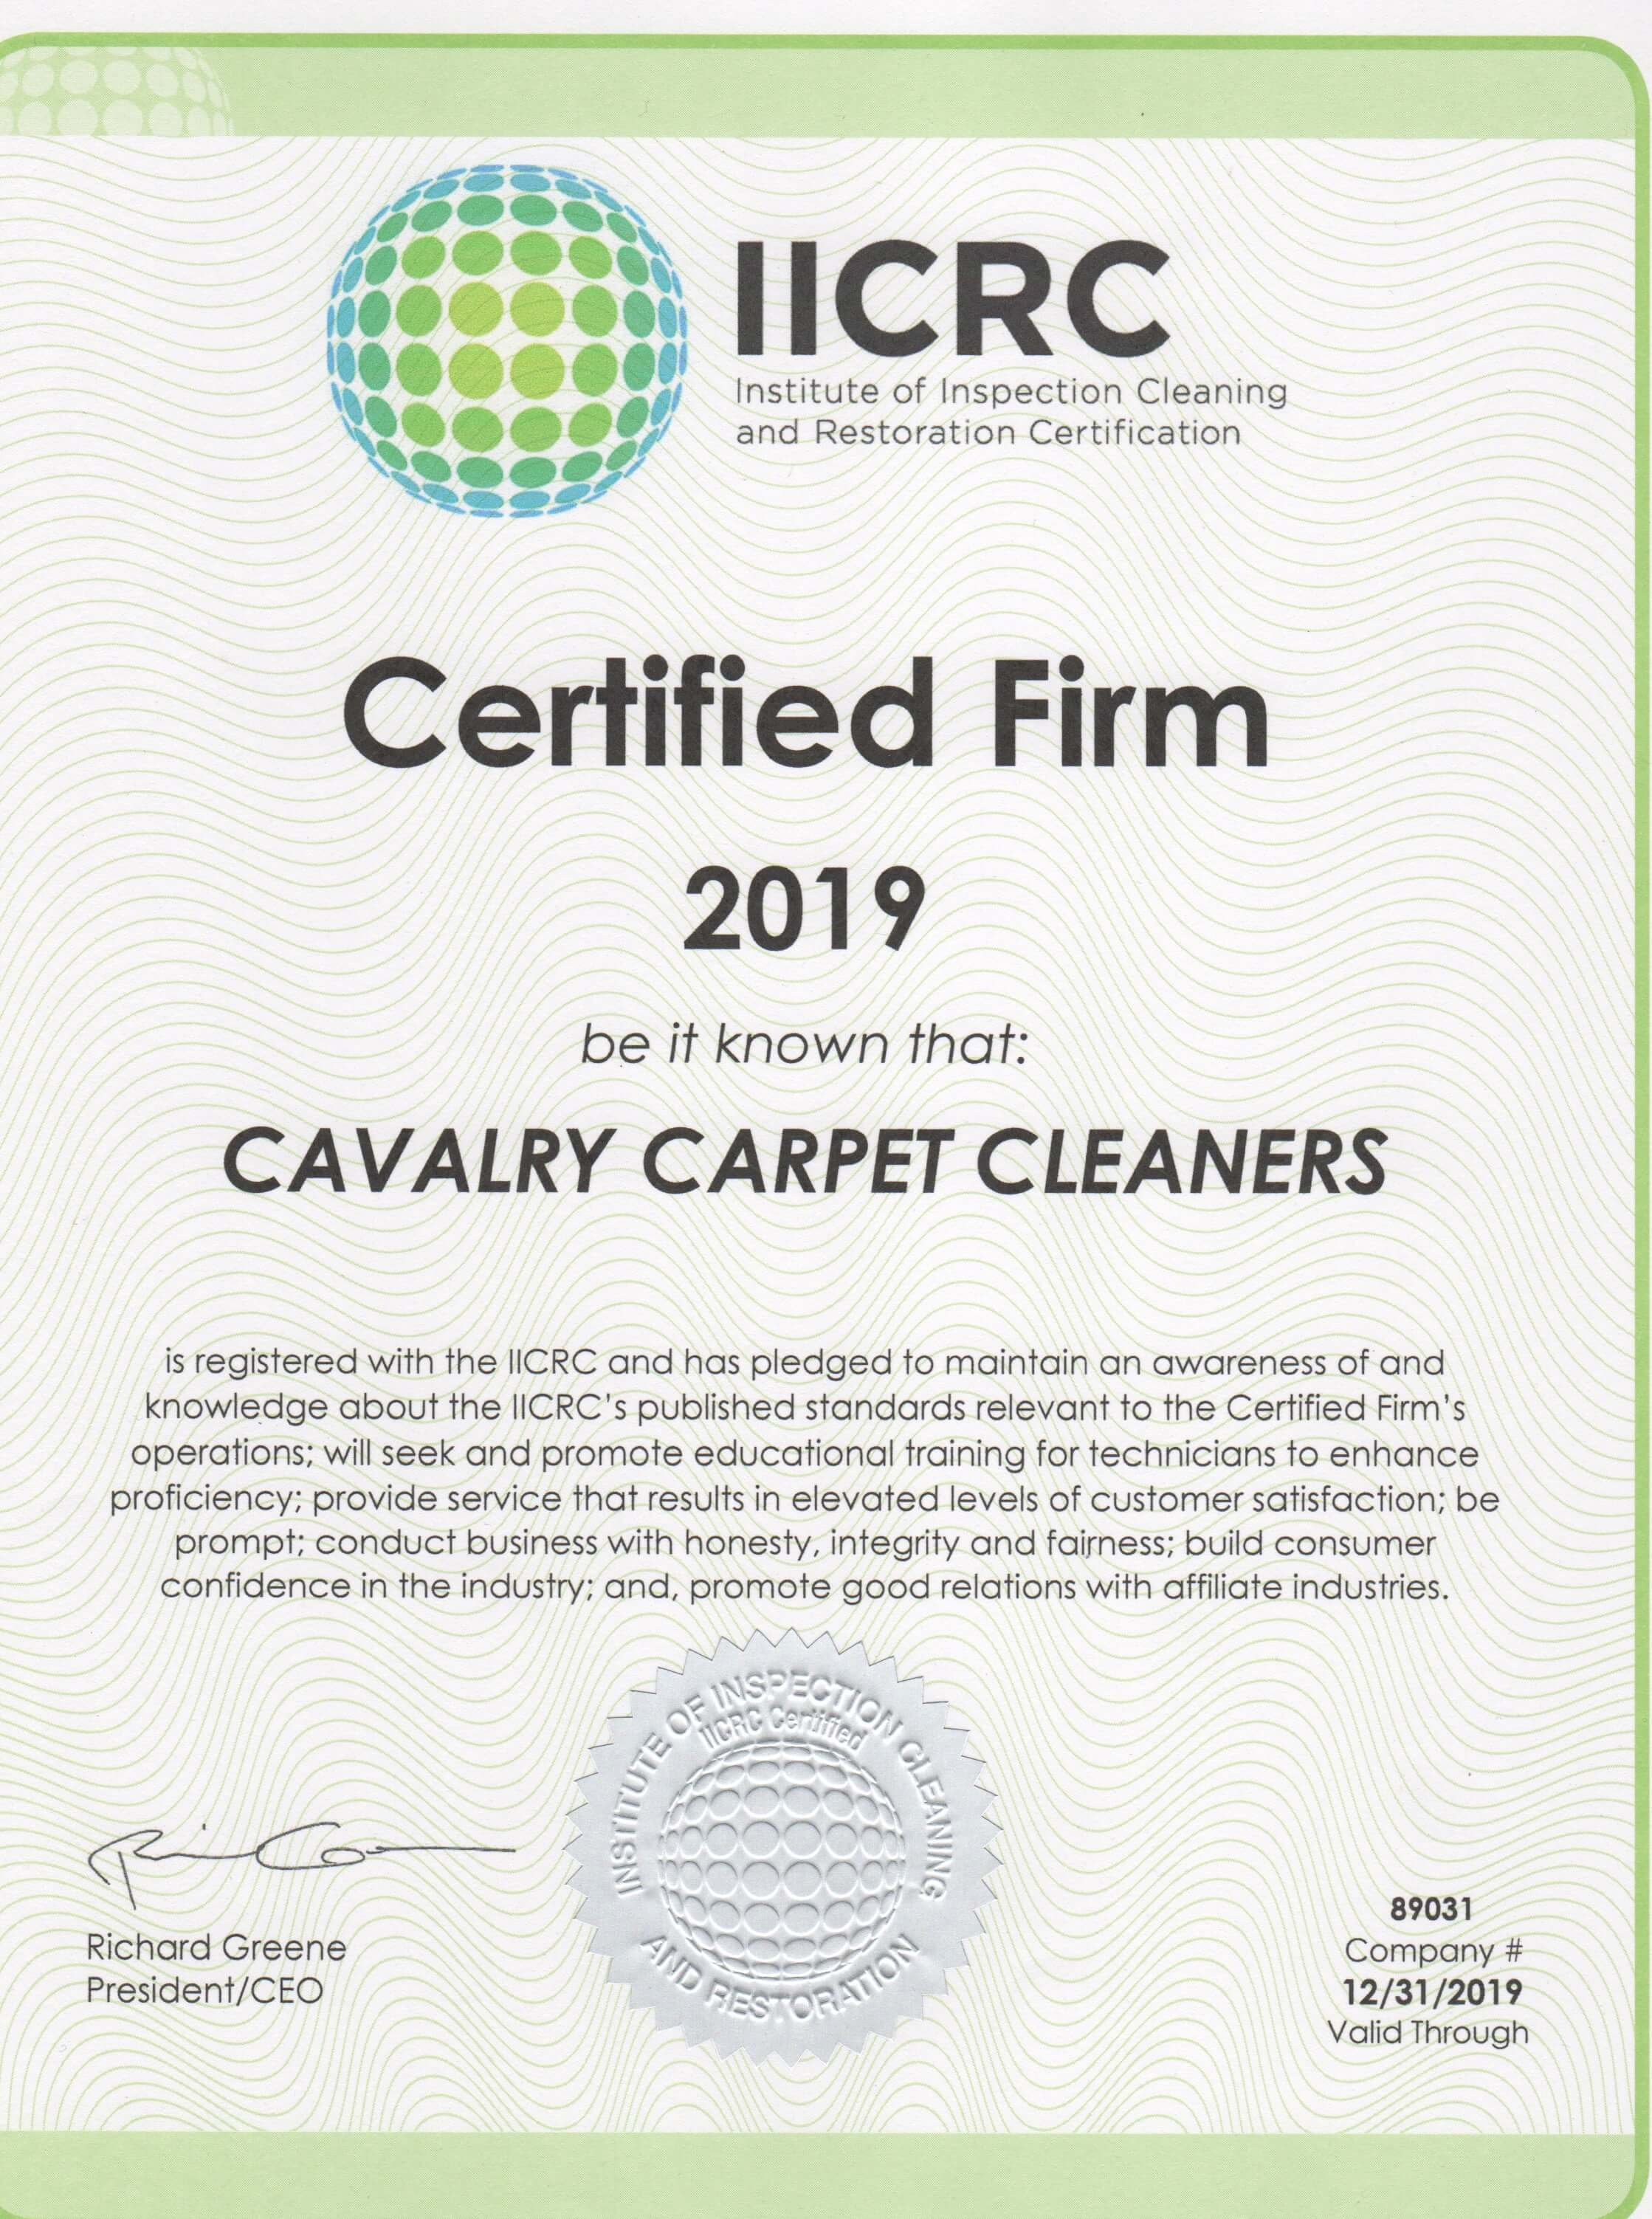 IICRC Firm Cavalry Carpet Cleaning